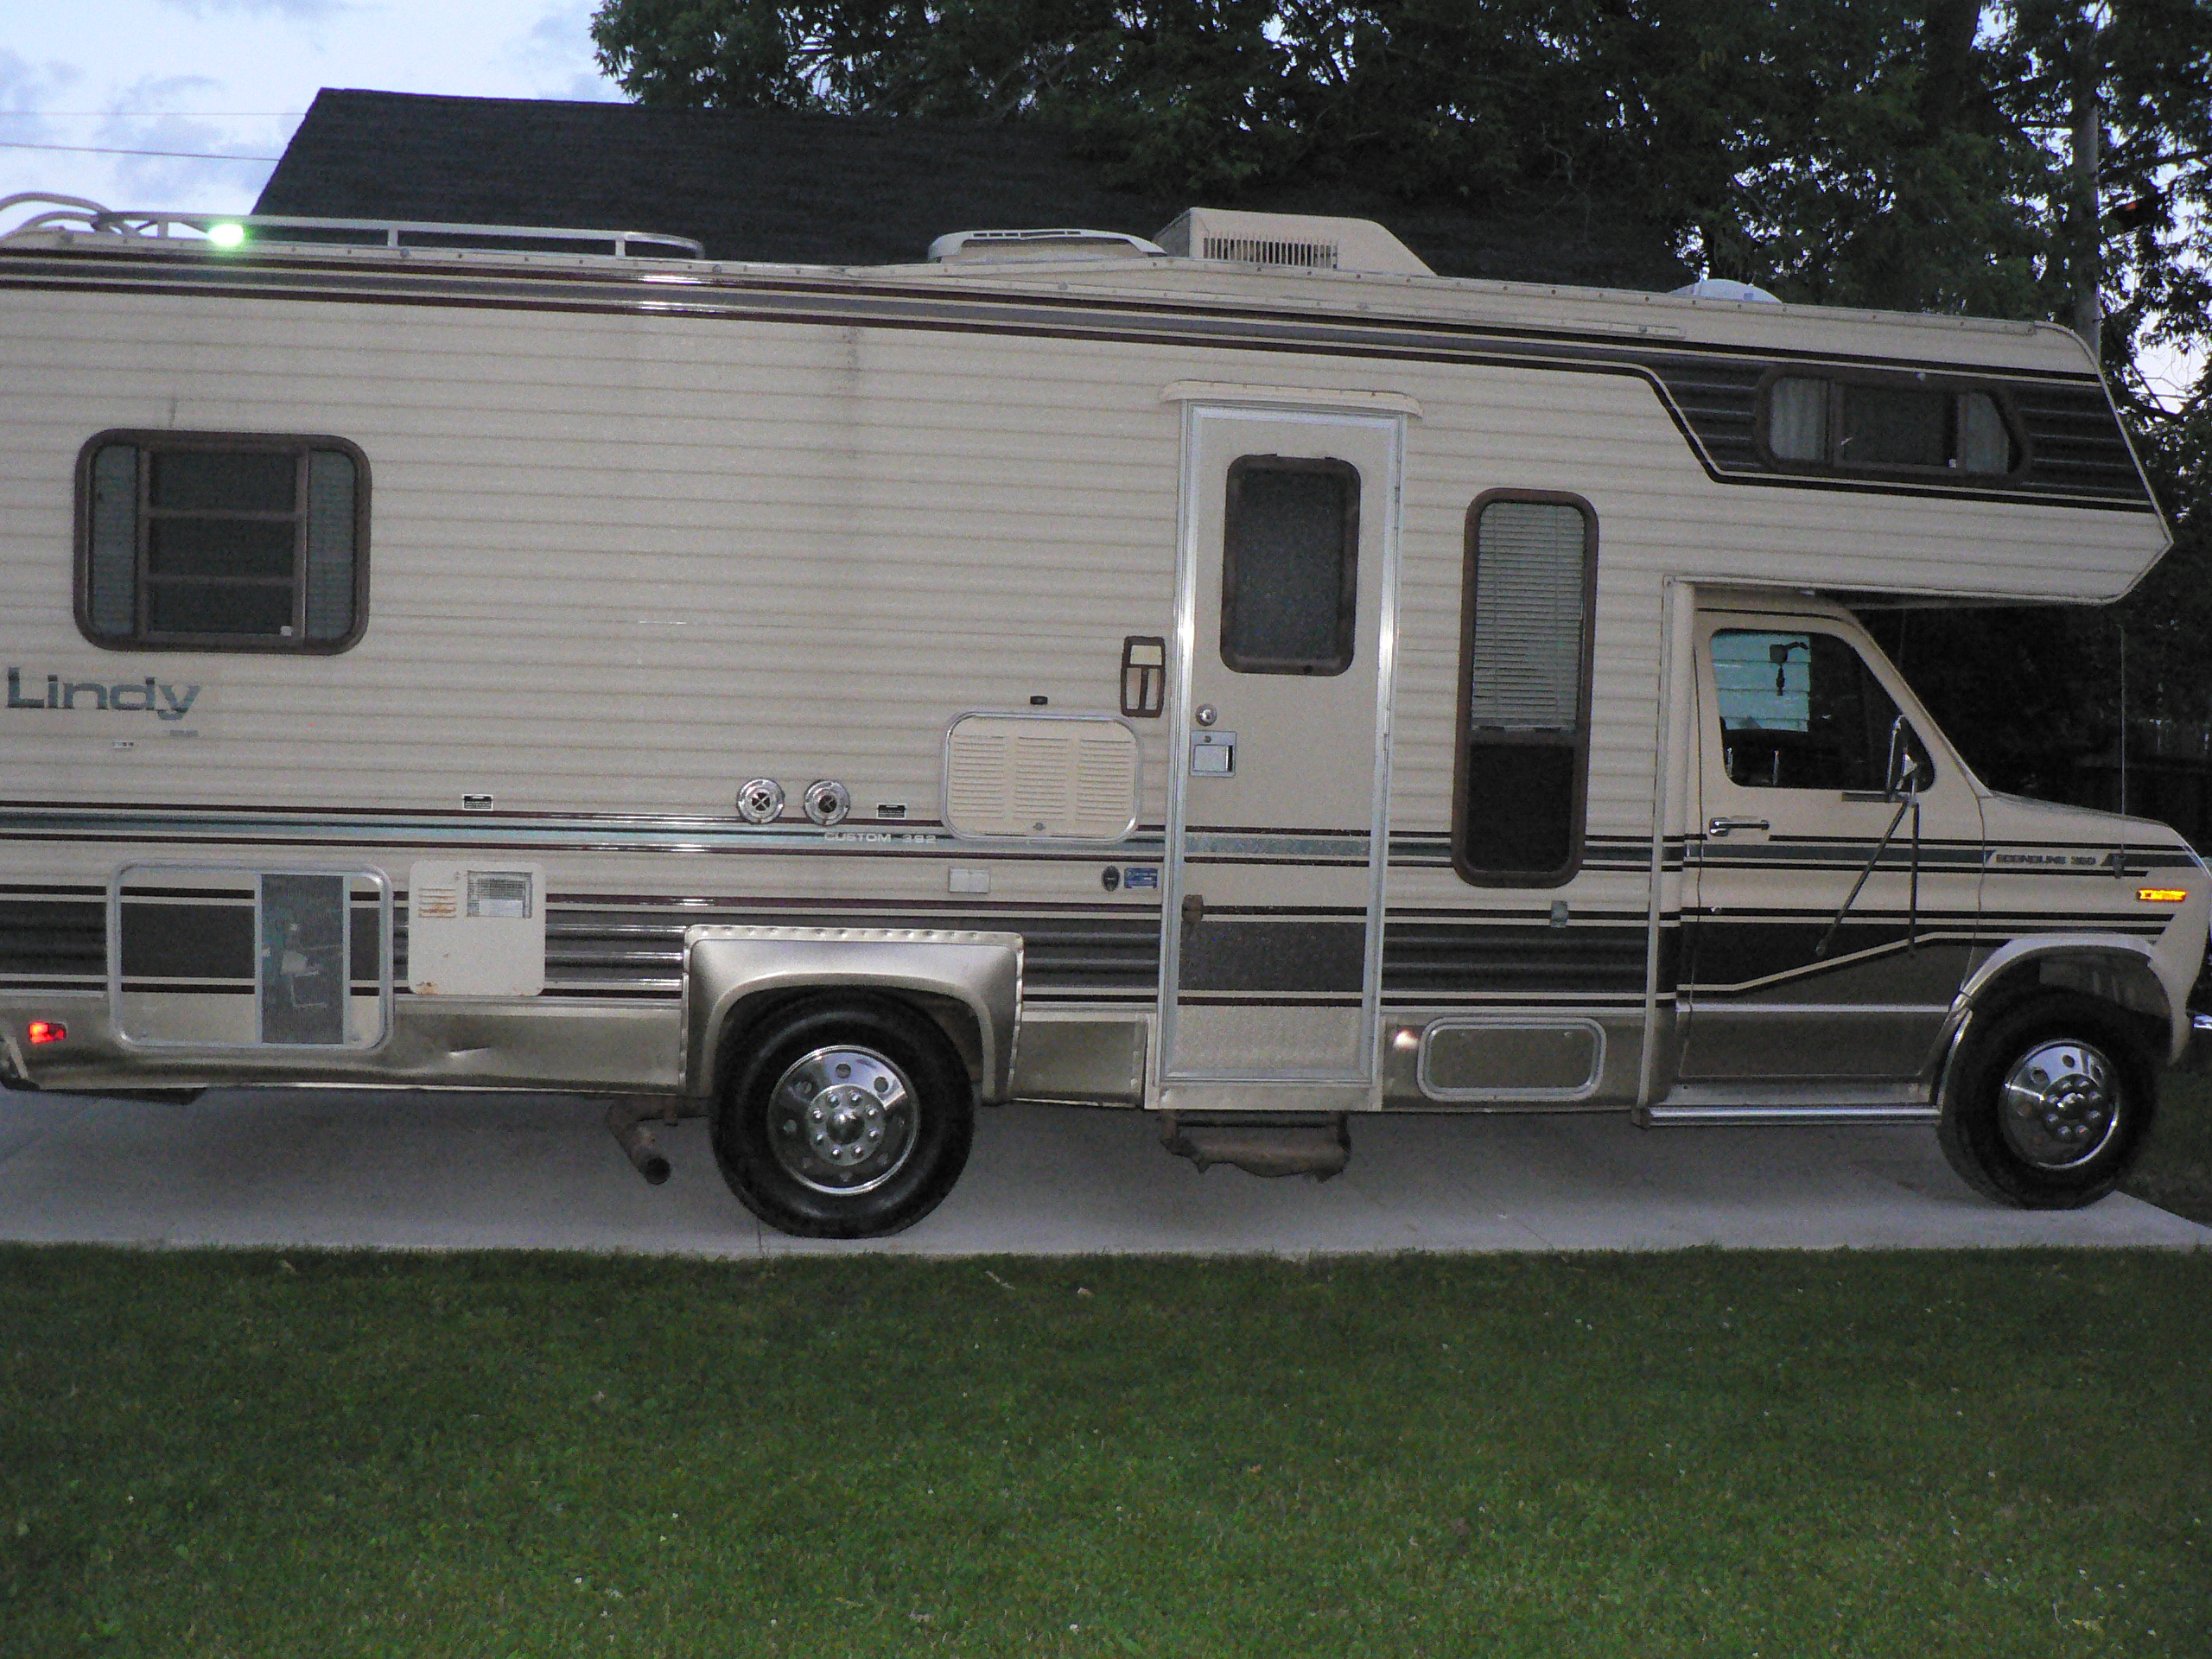 Loanables RV Mobile Home Camper located in Appleton WI